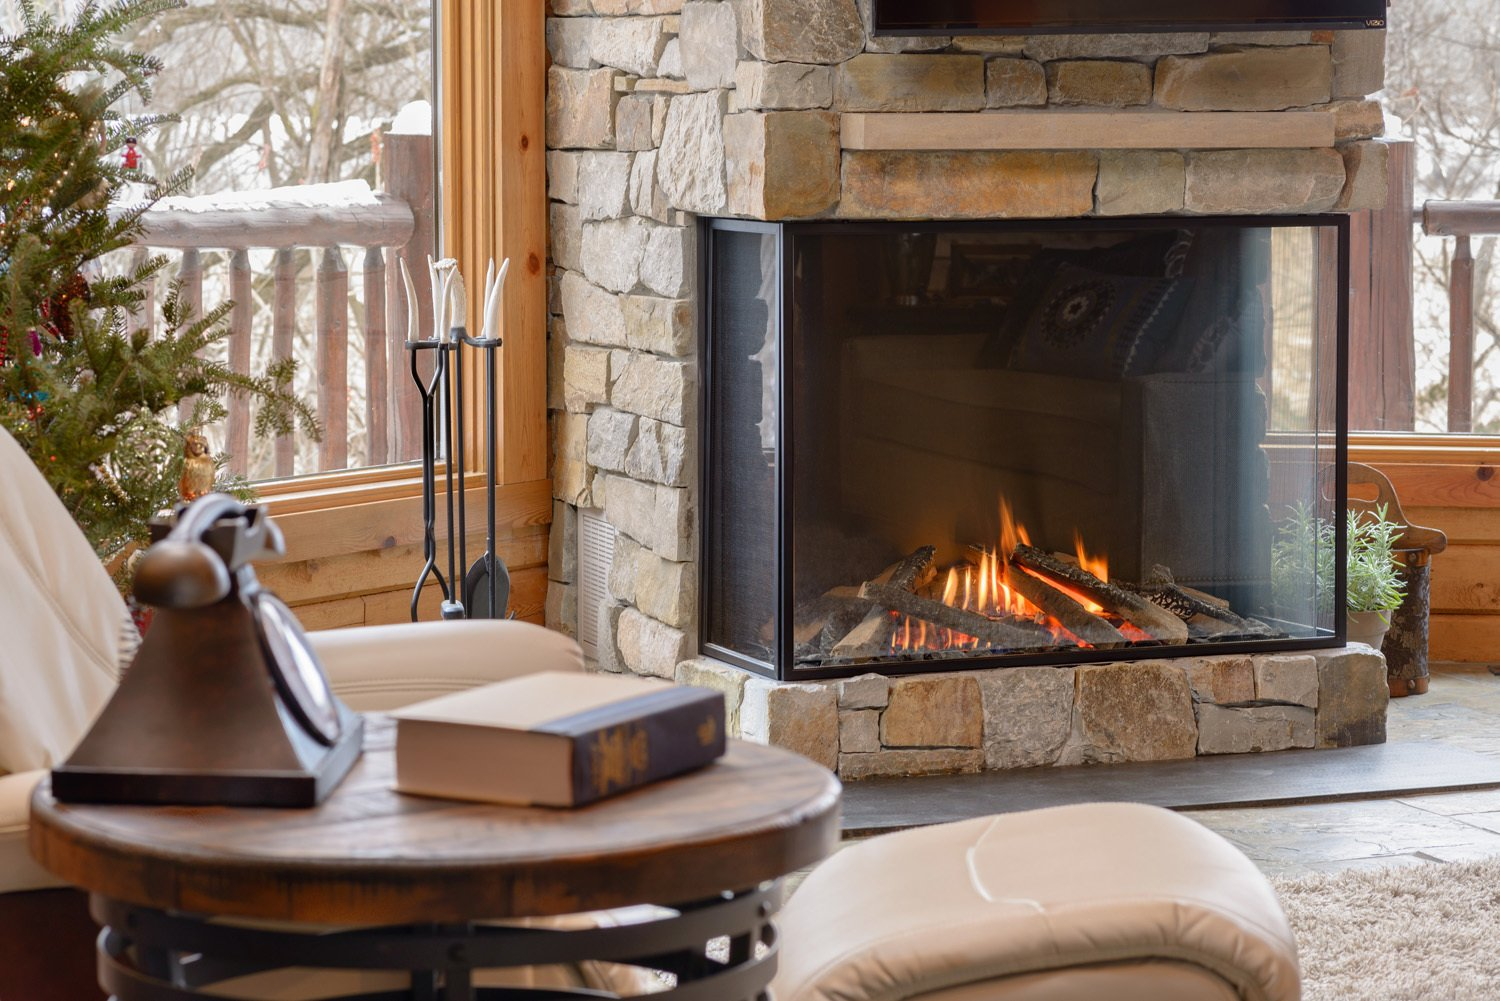 photo 2 of 6 in northwoods log cabin by european home dwell